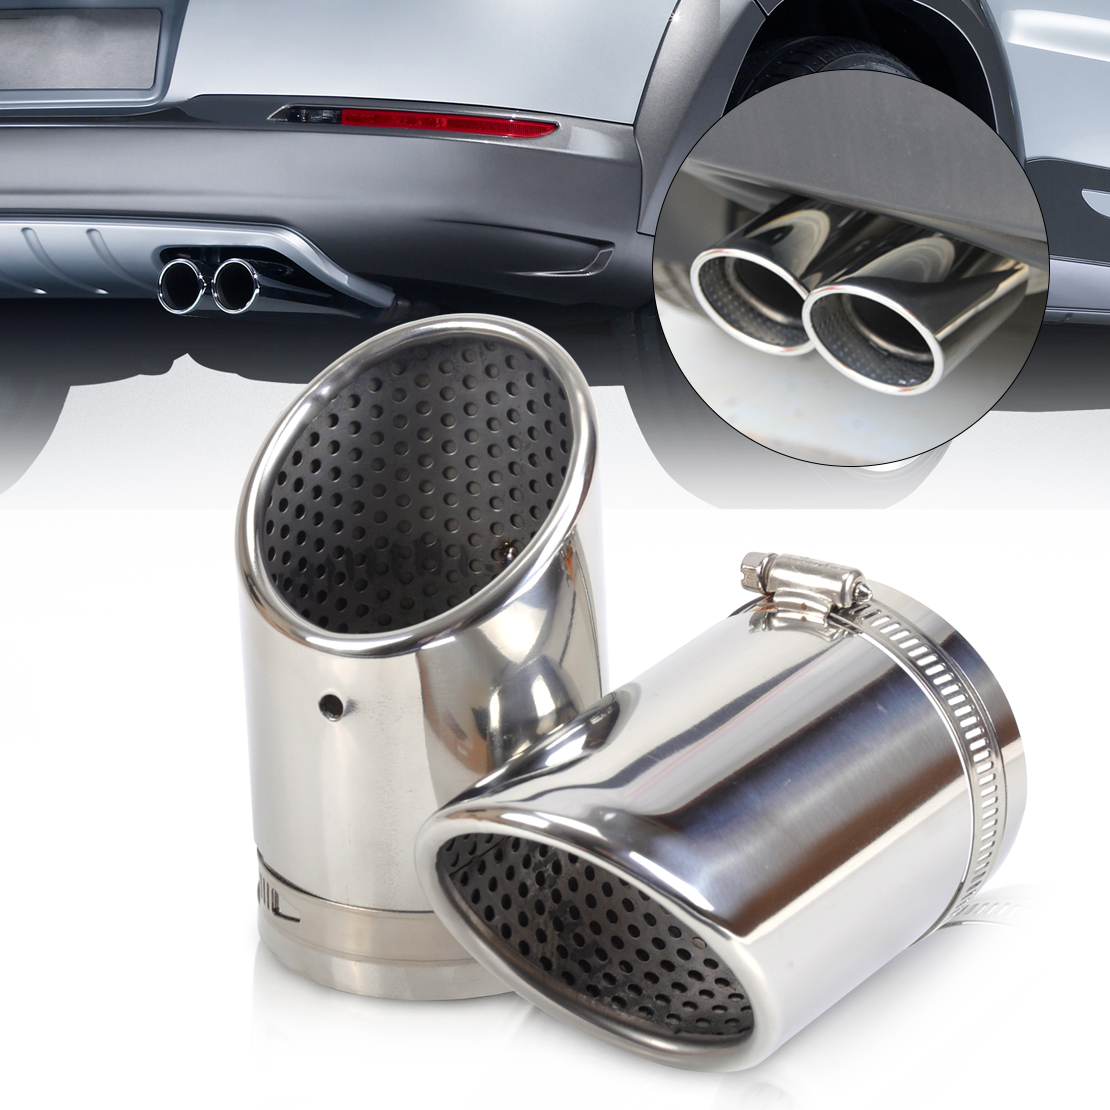 CITALL 2pcs Stainless Steel Exhaust Tail Rear Muffler Tip Pipe Tailpipe For VW Passat B6 Passat CC 2006 2007 2008 2009 2010 for vw passat b6 seden 2006 2007 2008 2009 2010 2011 led rear tail light lamp right side outer left hand trafic only